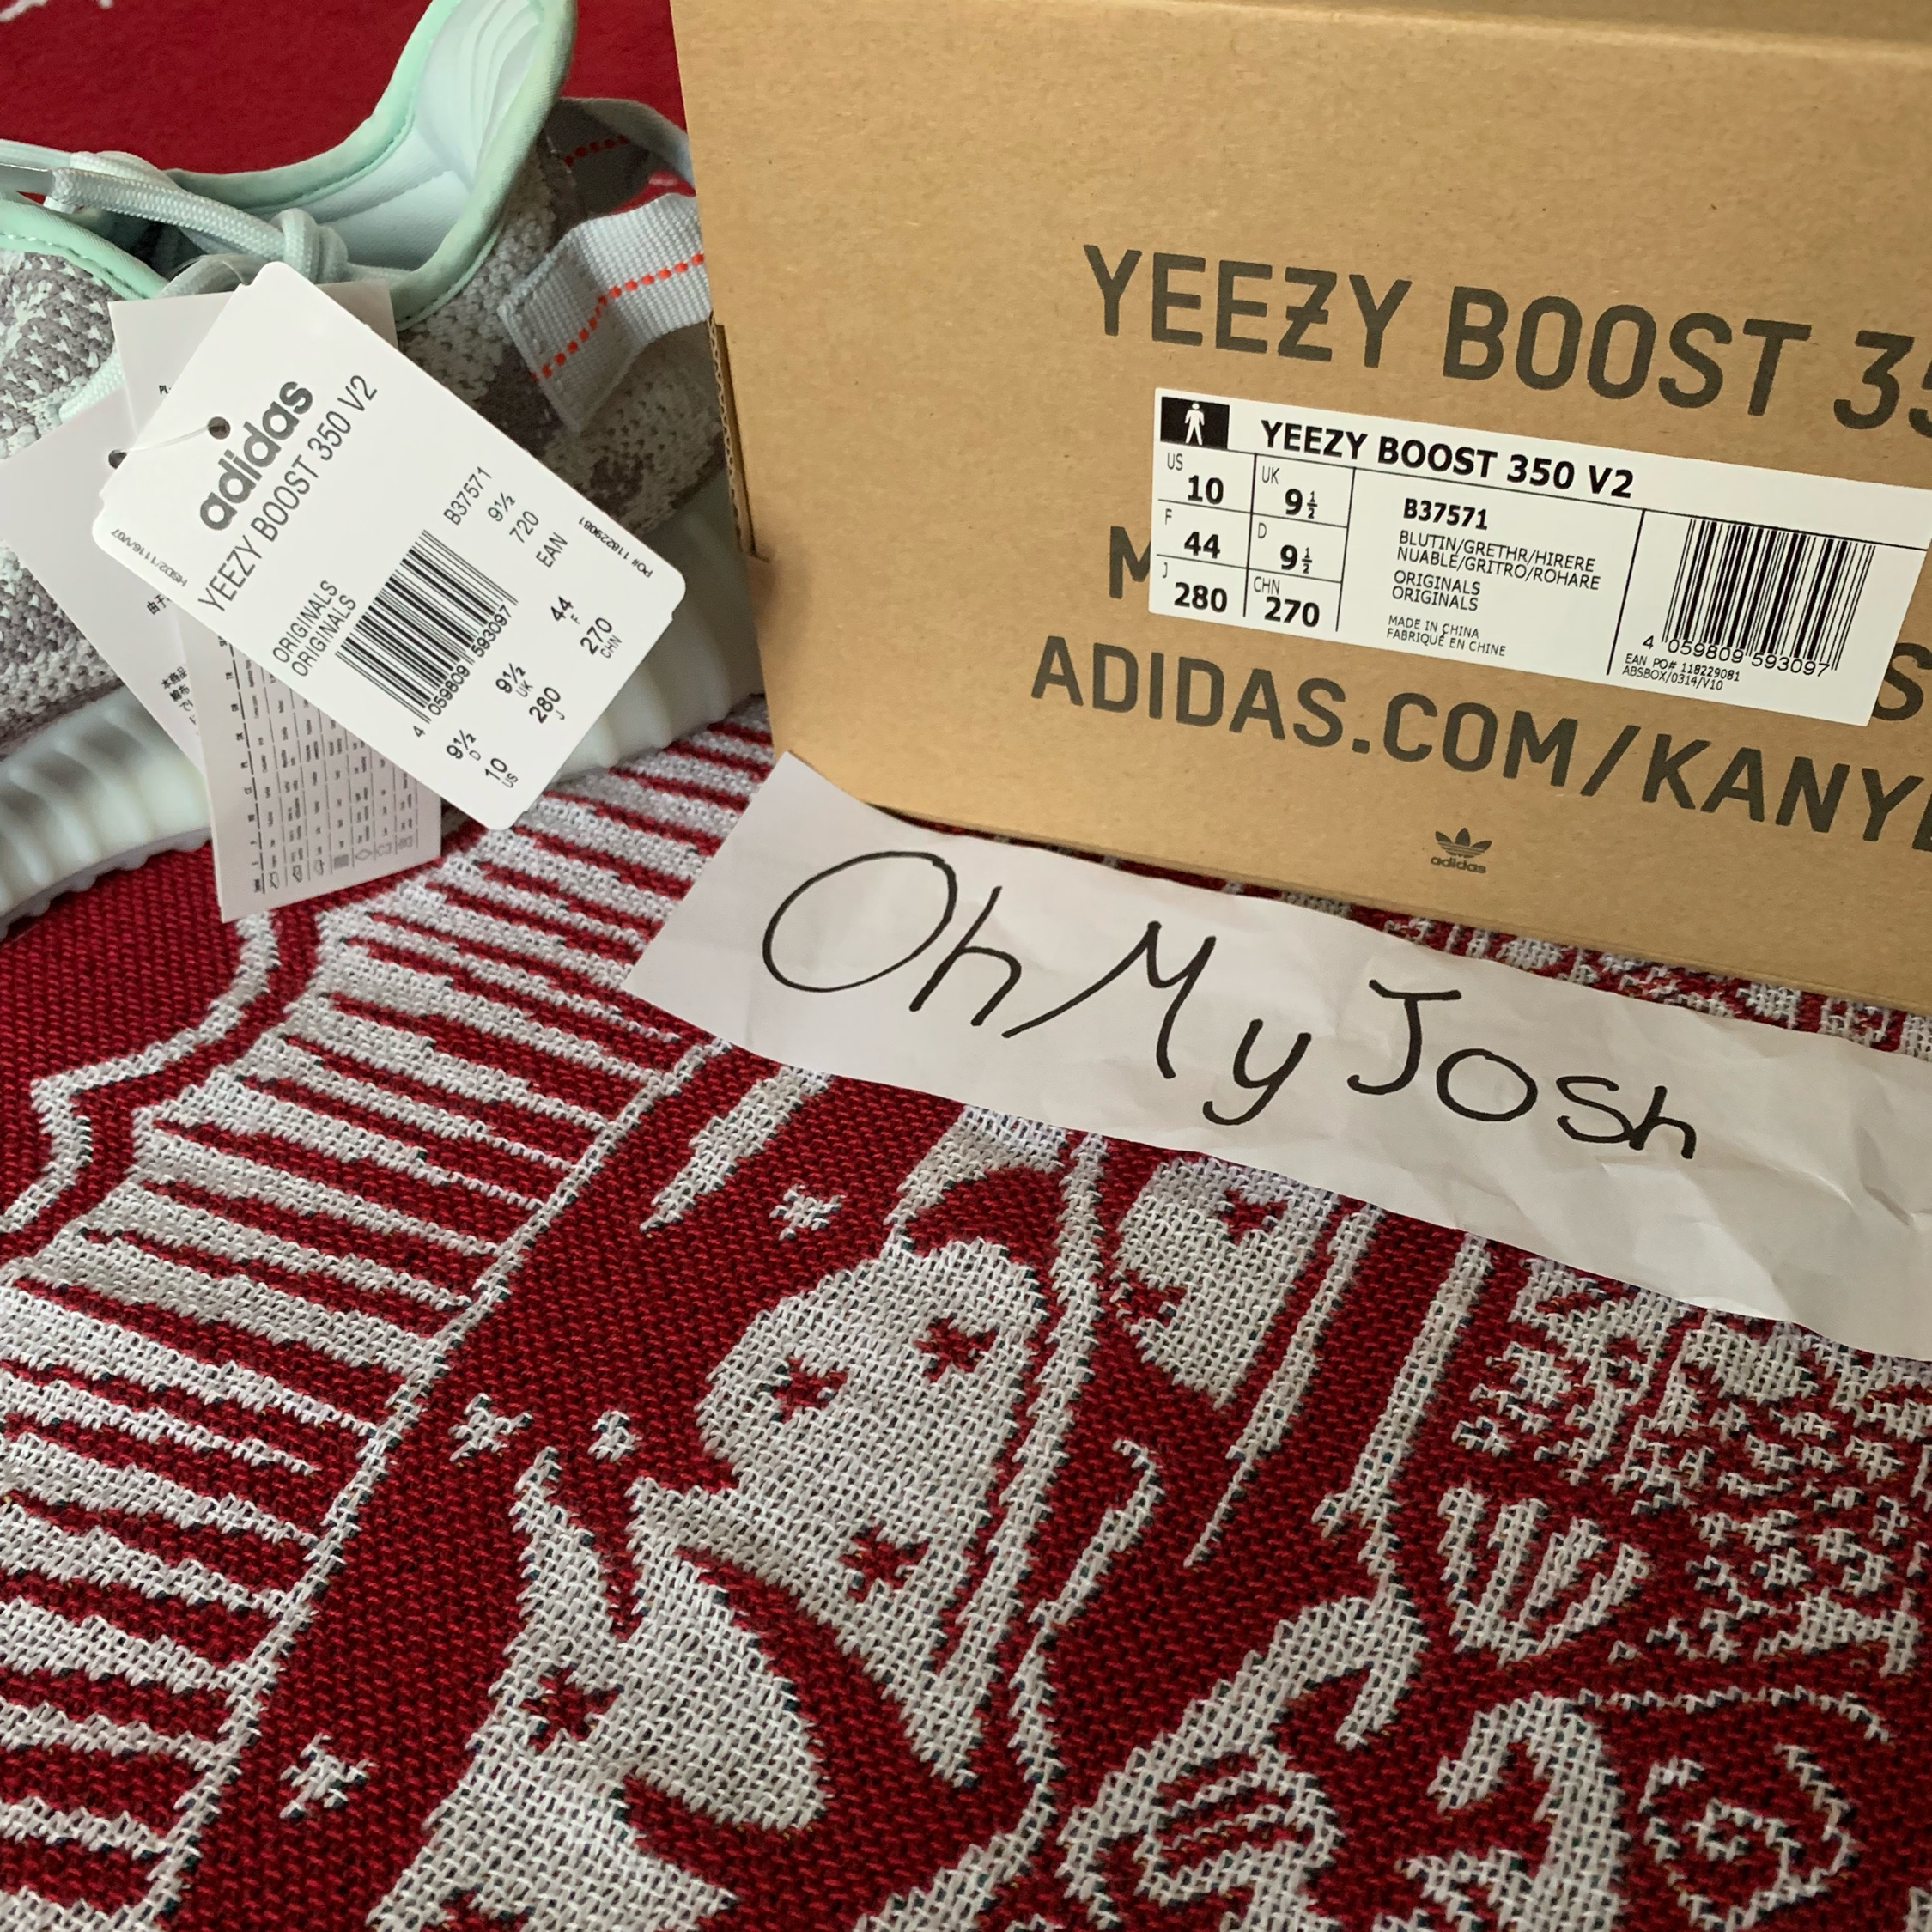 Yeezy Blue Tint Uk 9.5